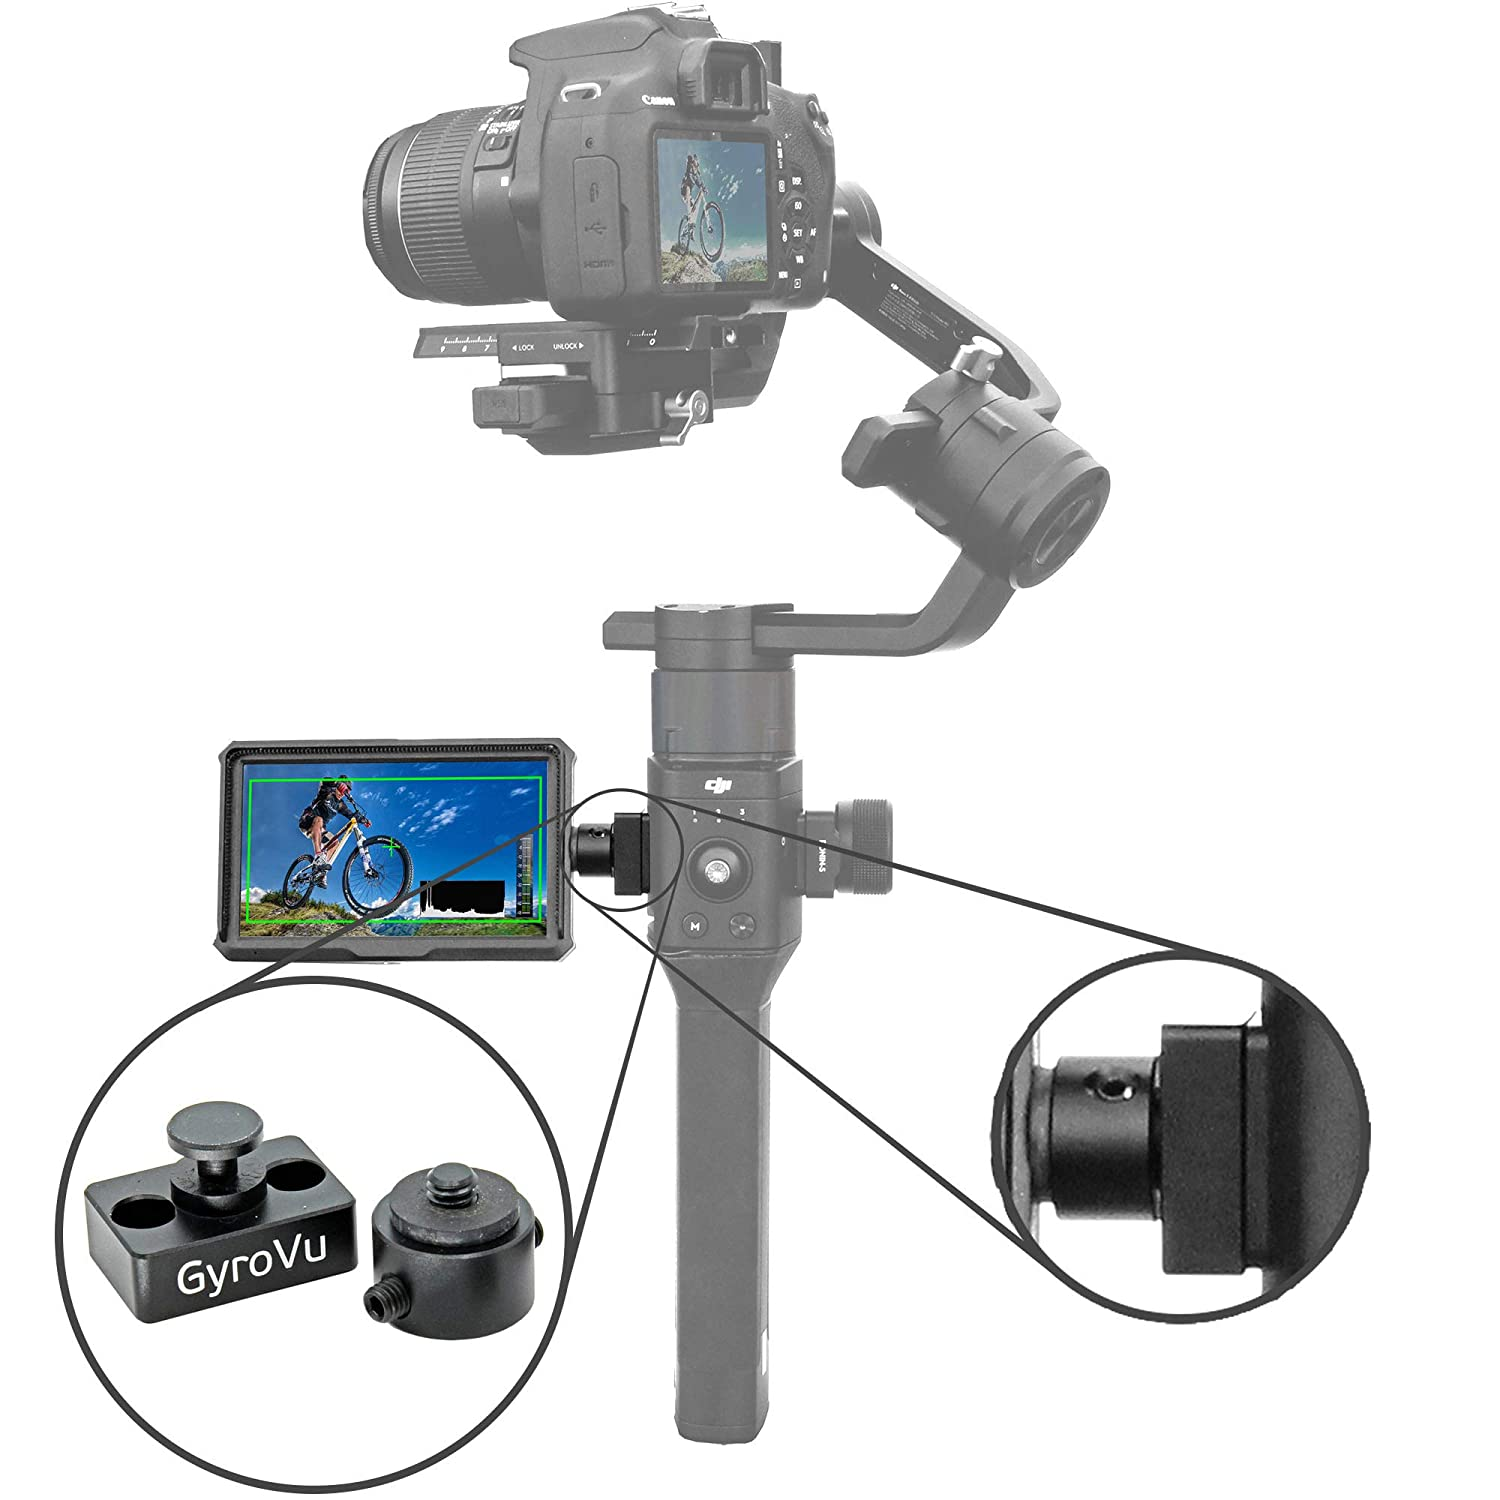 GyroVu Ultra Light Hi-Res 4K 5 HDMI Monitor with Swivel Mount for DJI Ronin-S